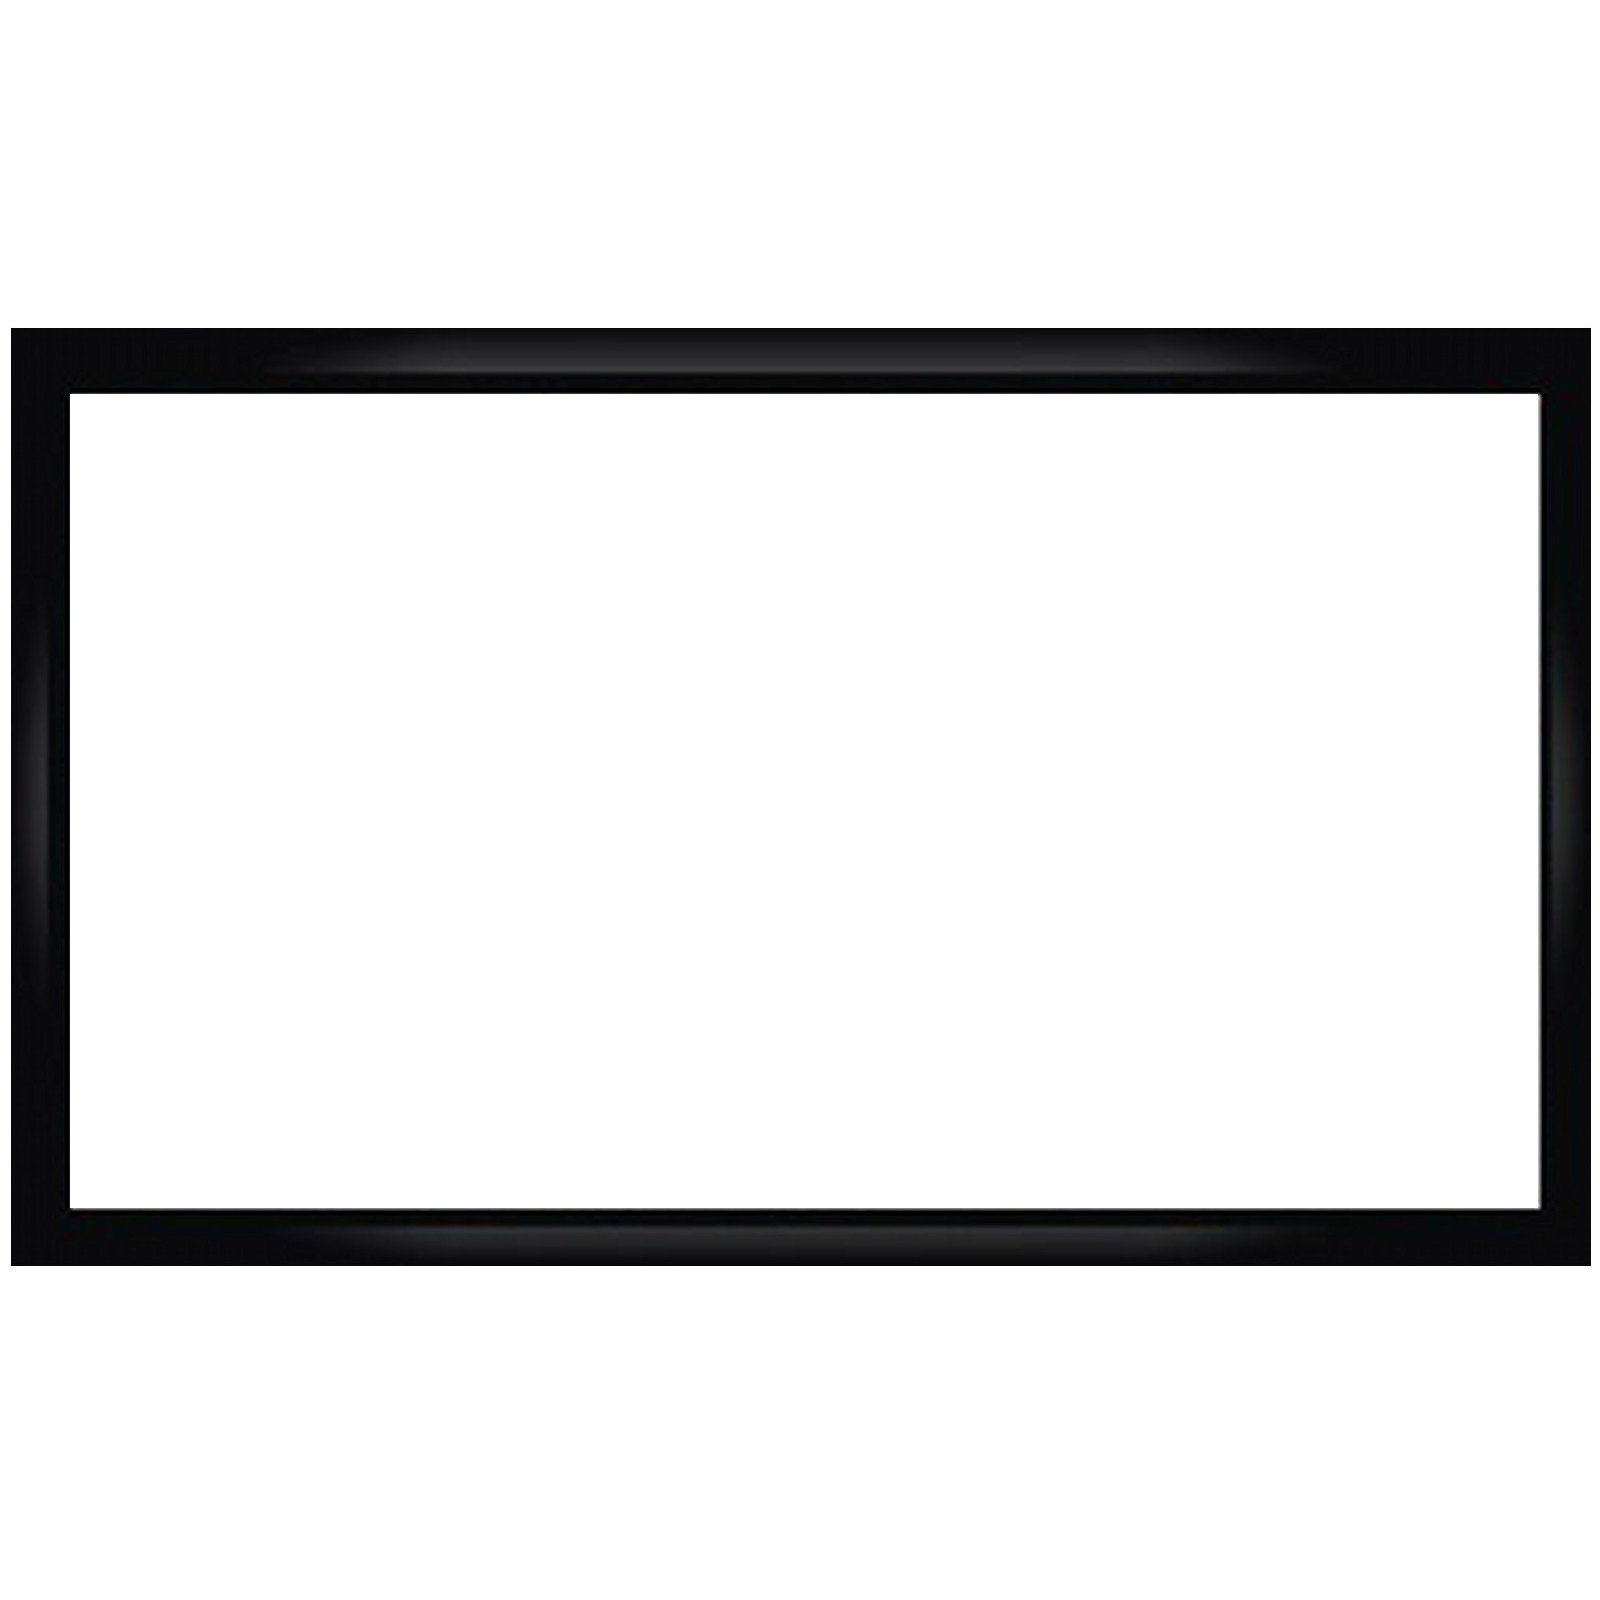 Antra 16:9 Fixed Projector Projection Screen (6-PC Frame) PVC material 3D HD Compatible for Home Theatre Office Presentation (16:9 92'', Matt White)